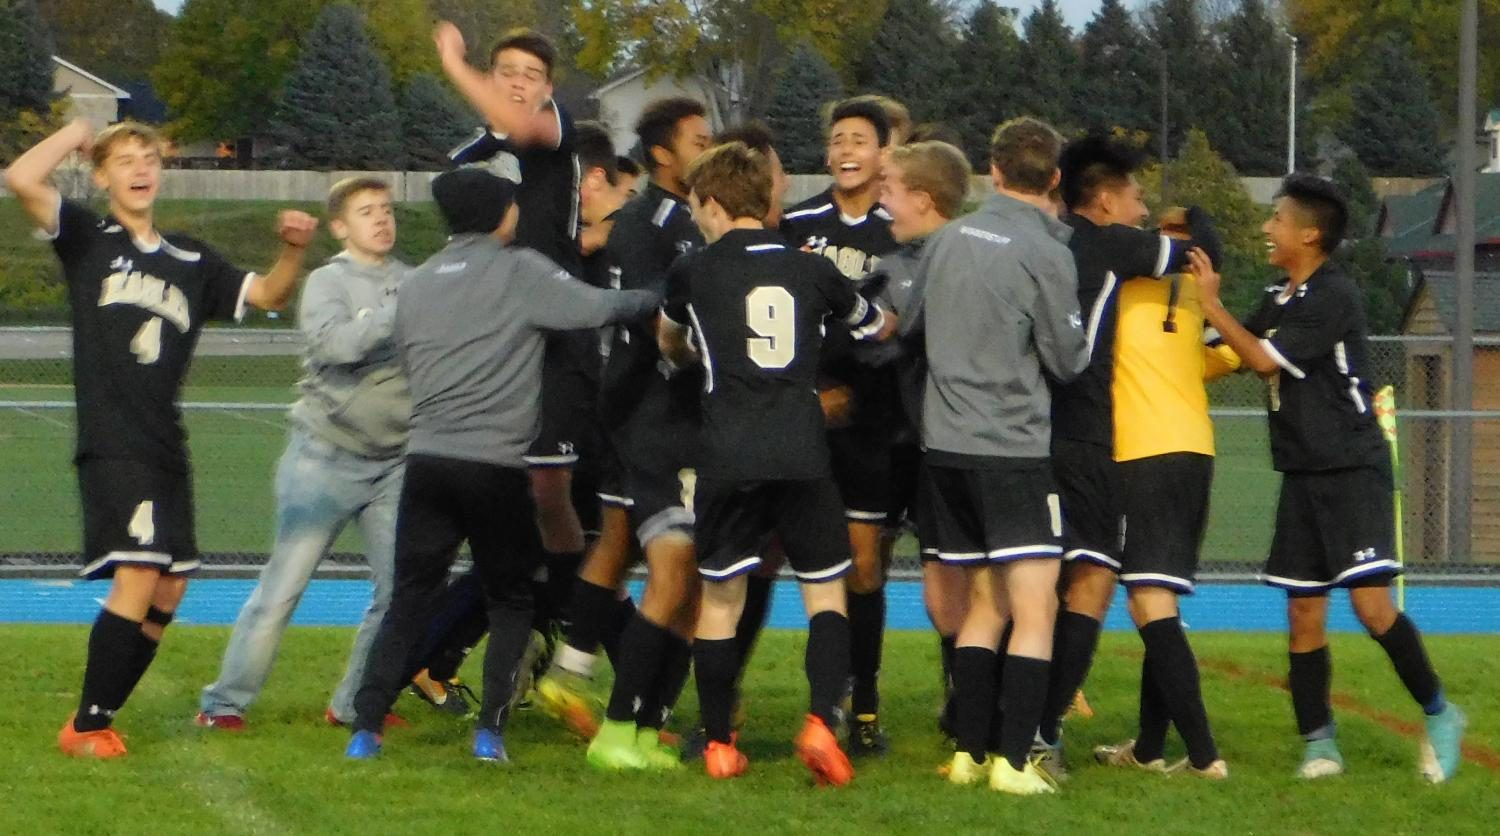 The team celebrates after winning the game.